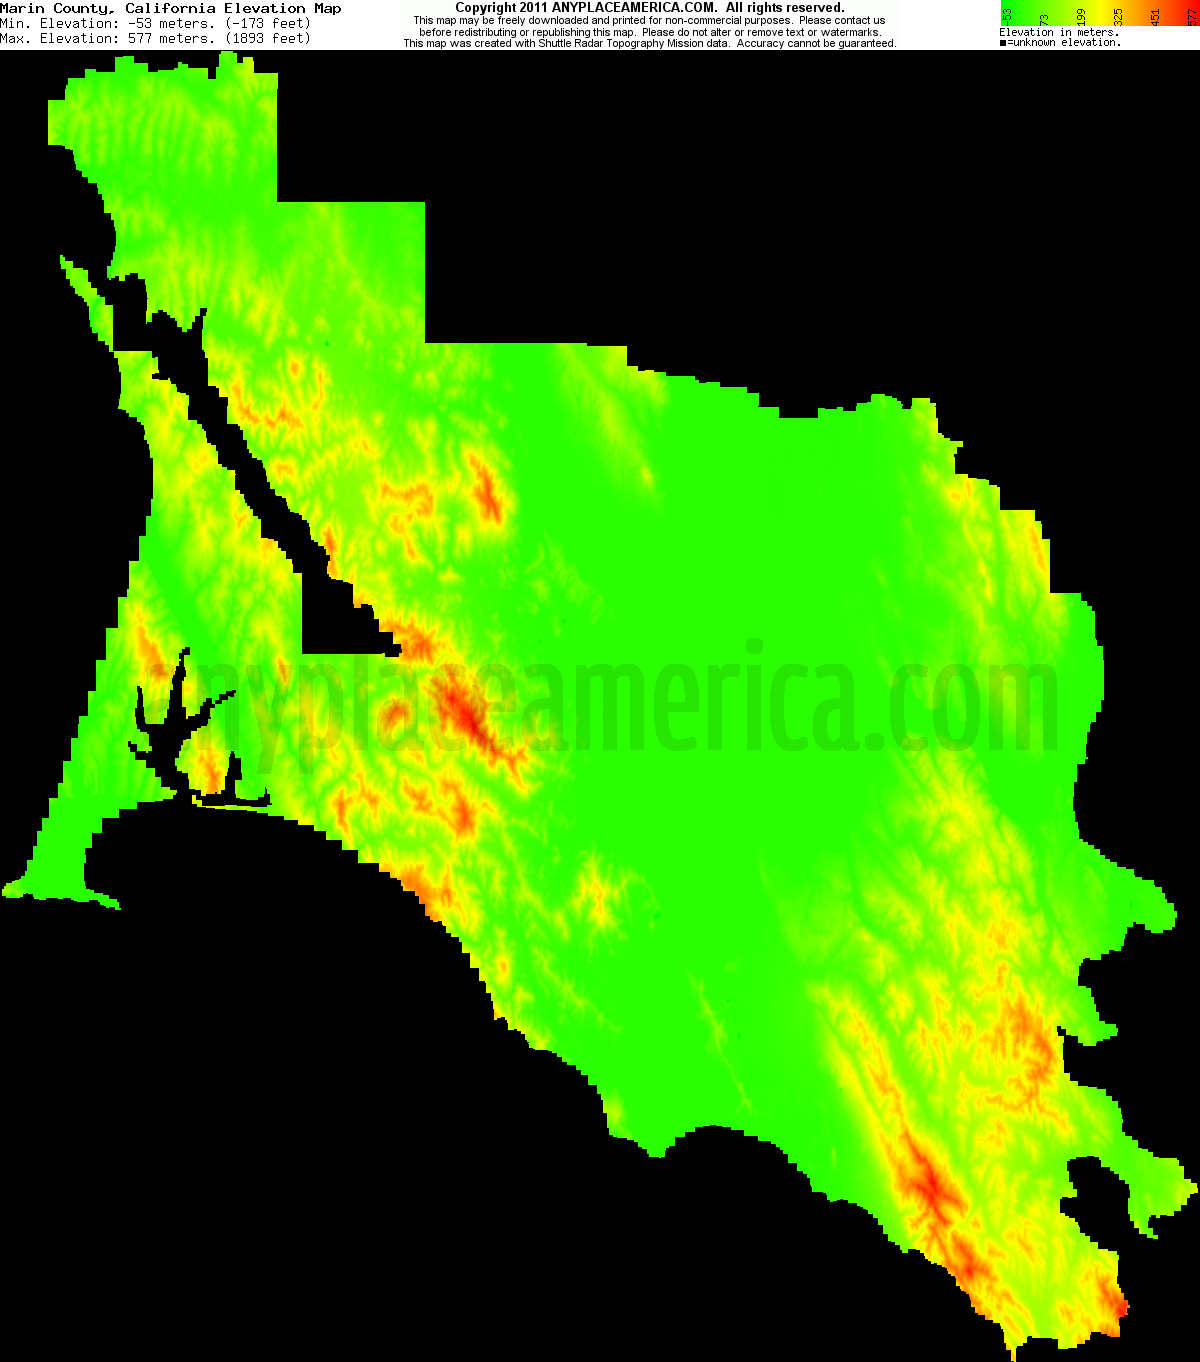 Free Marin County California Topo Maps Elevations - Elevation map of california